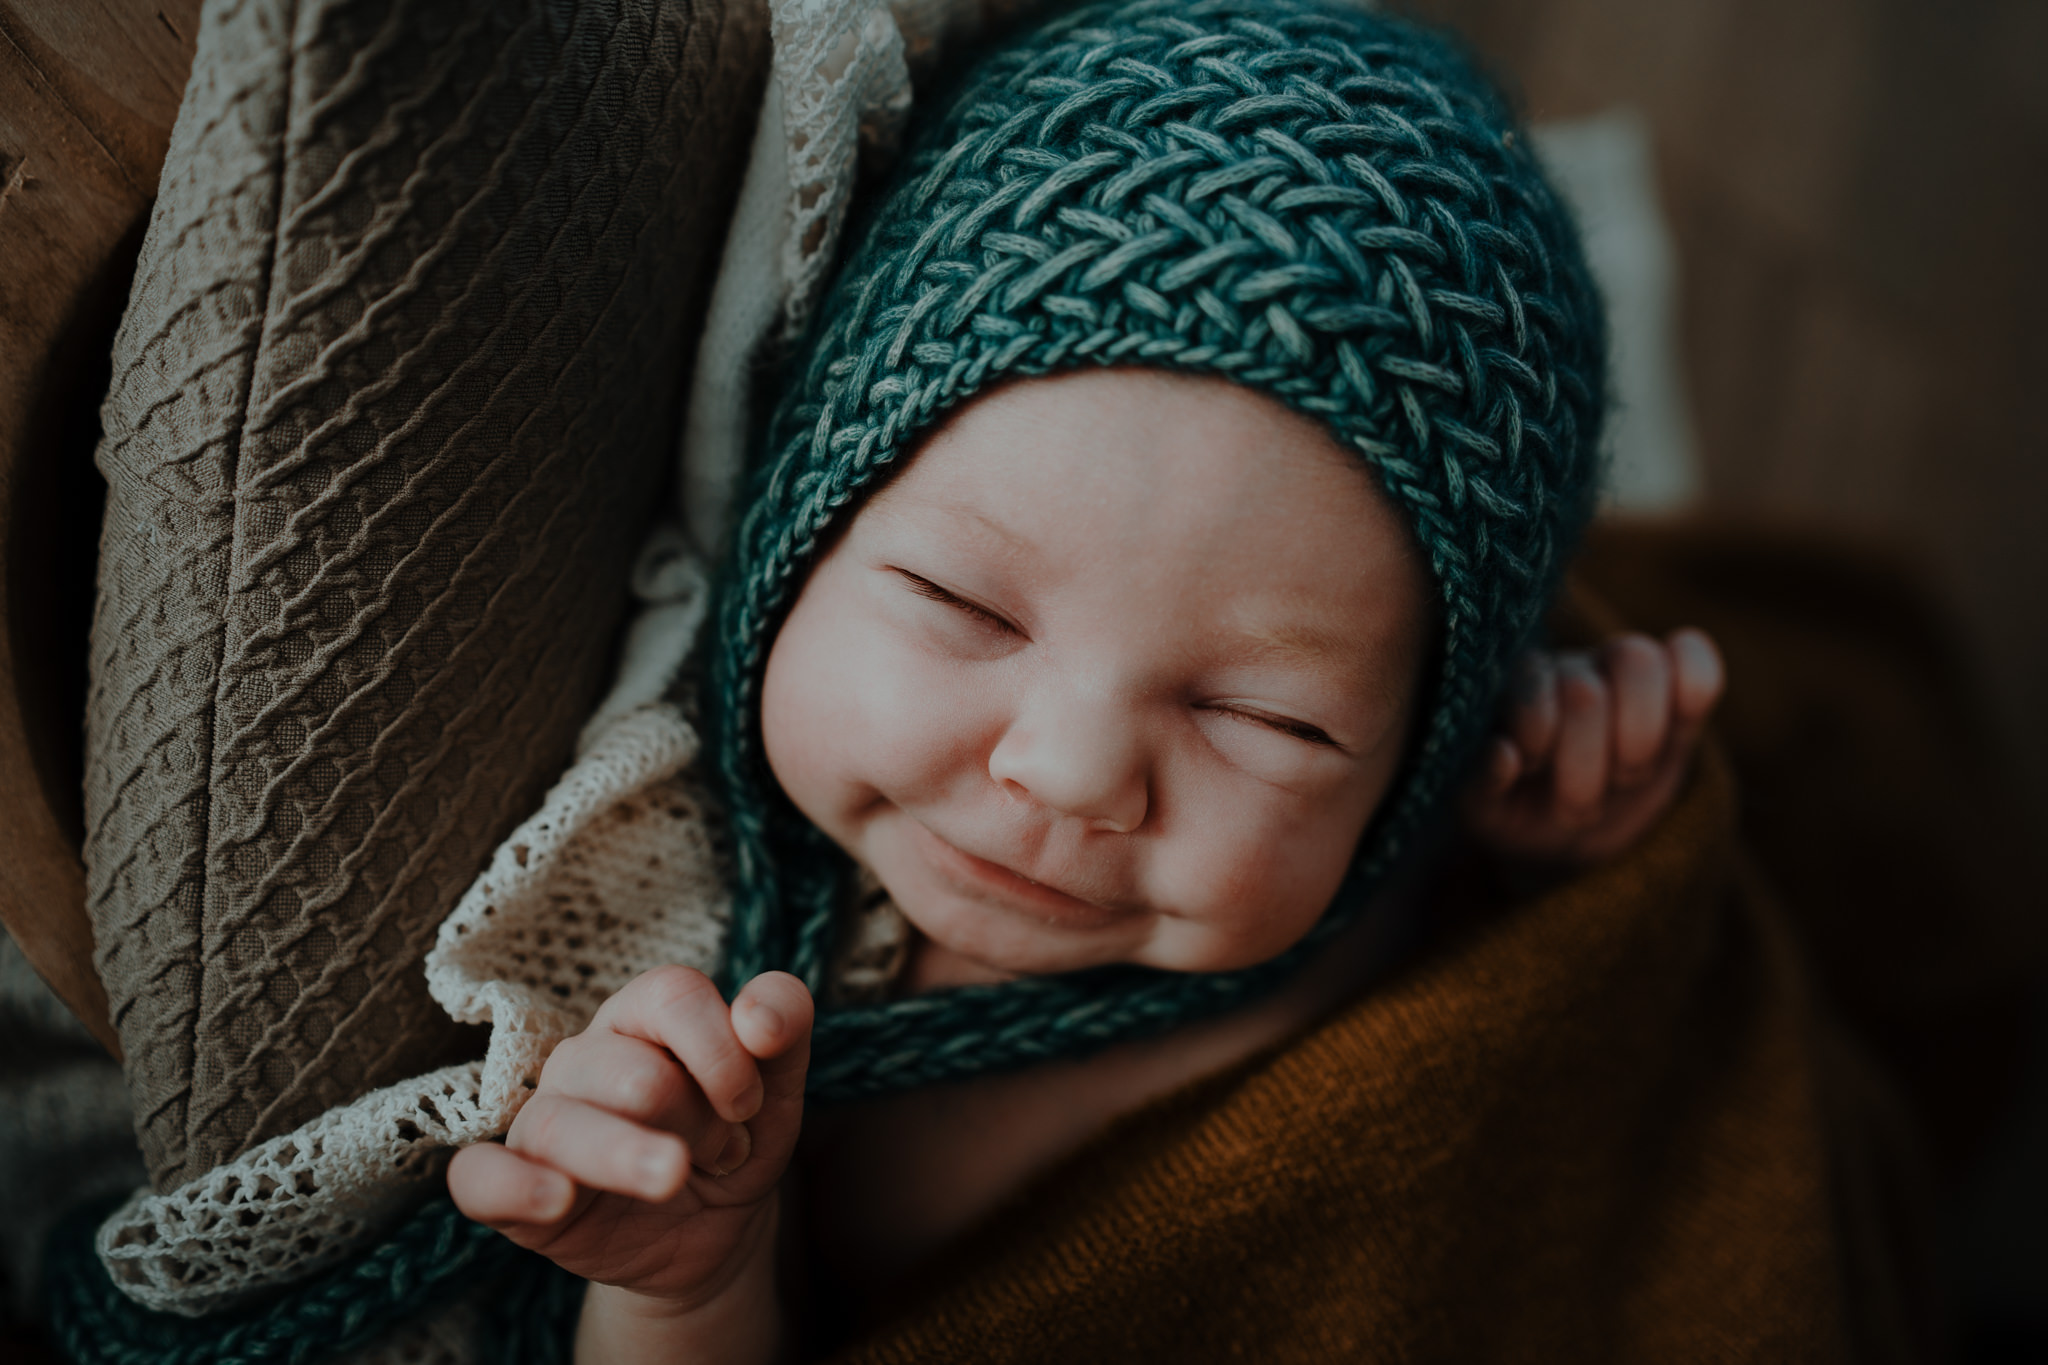 smiling-newborn-baby-teal-bonnet-in-home-belfast-photographer